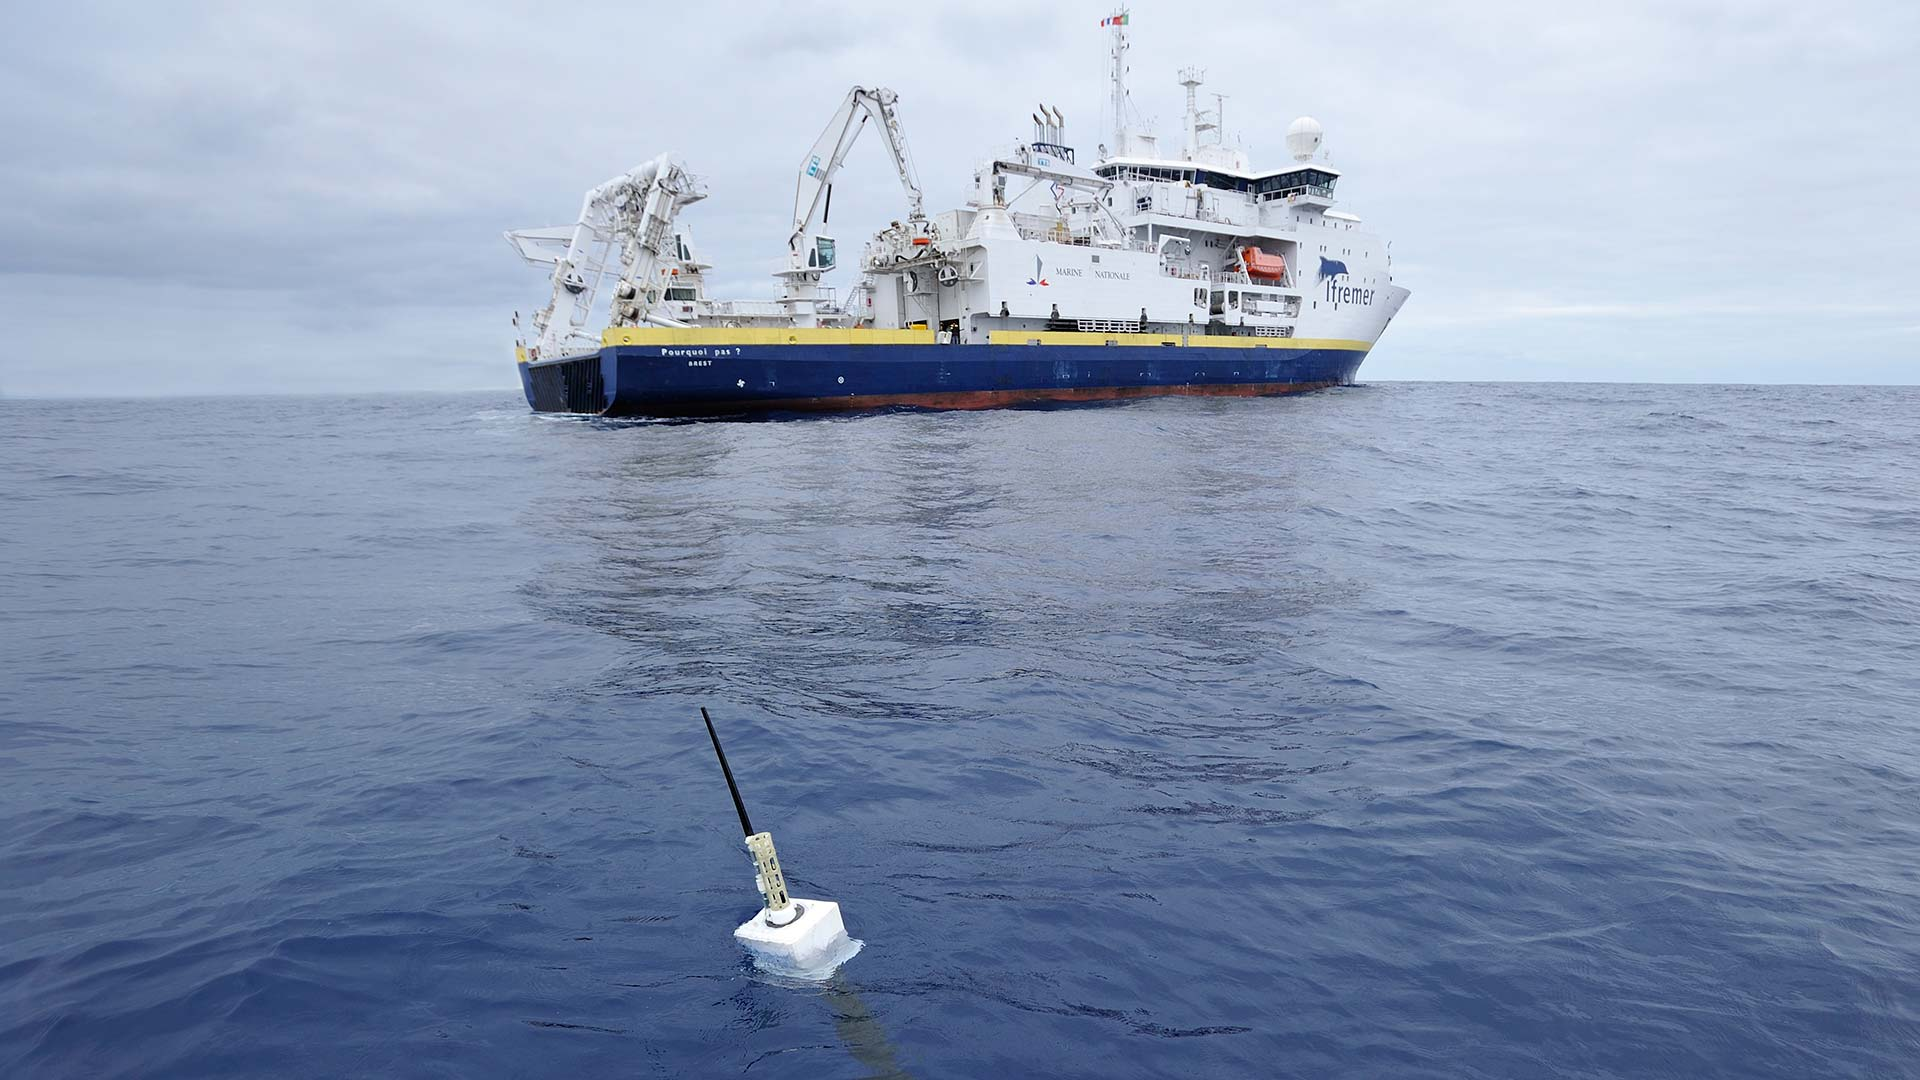 Floating sensors help scientists measure ocean temperatures for clues to causes of climate change.